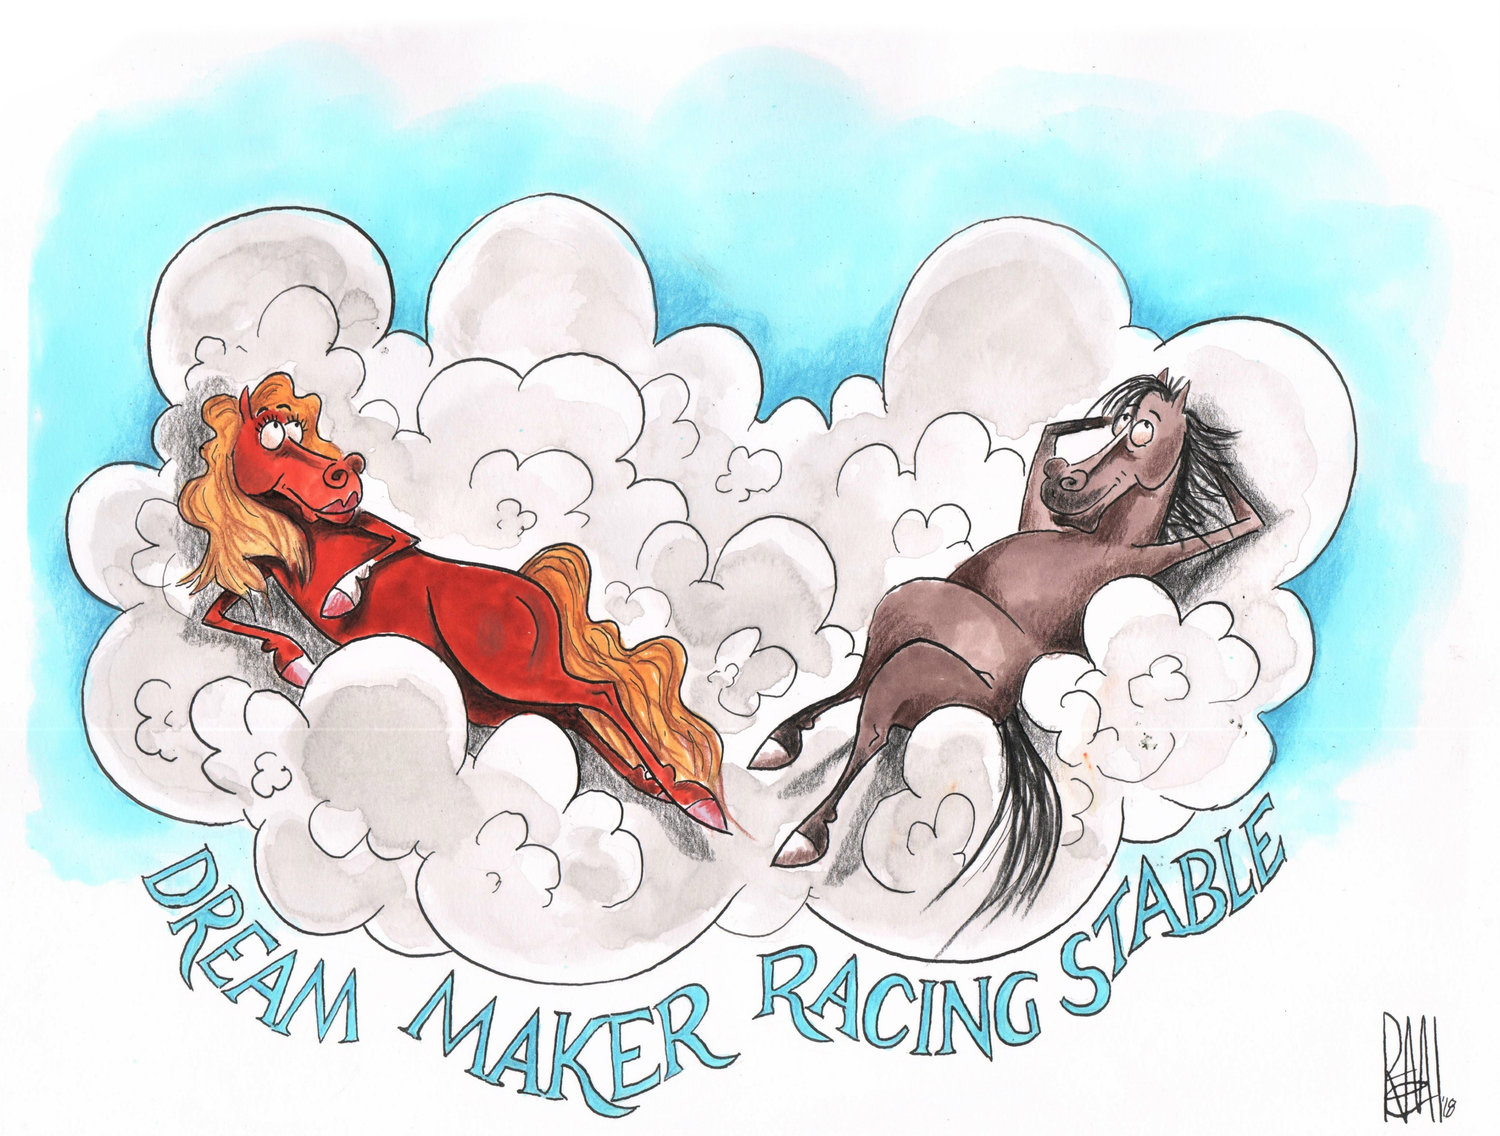 Dream Maker Racing